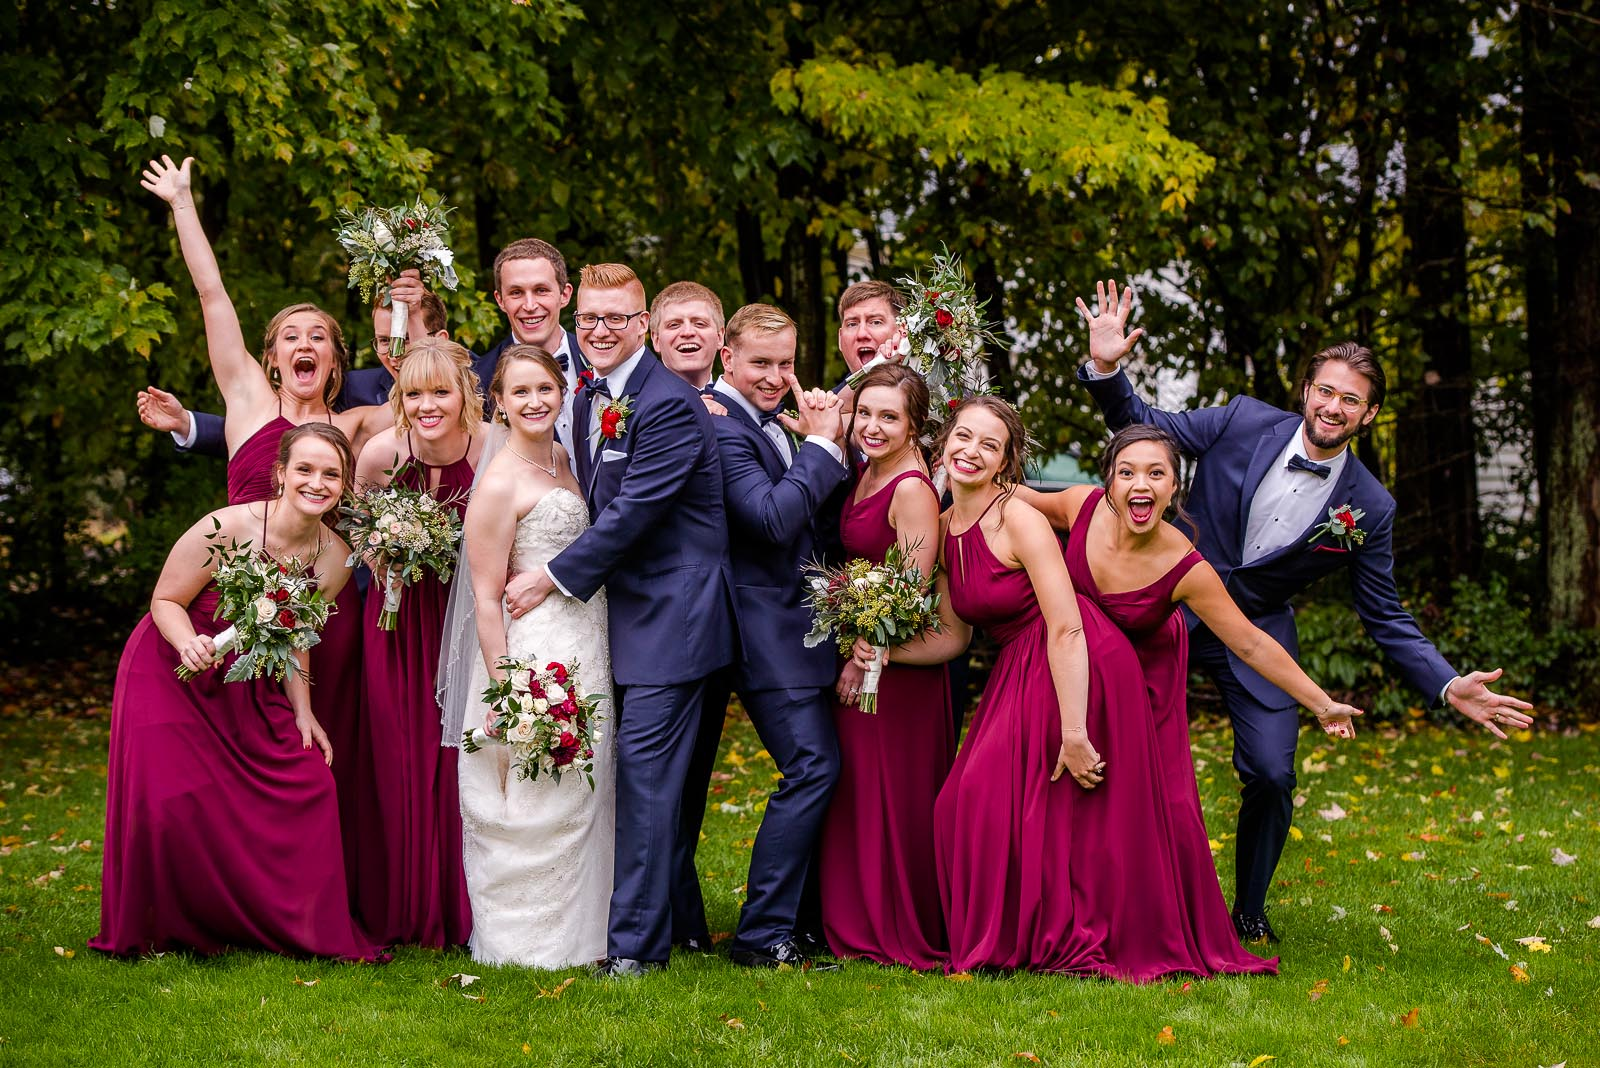 Eric_and_Christy_Photography_Blog_2018_Wed_moments-67